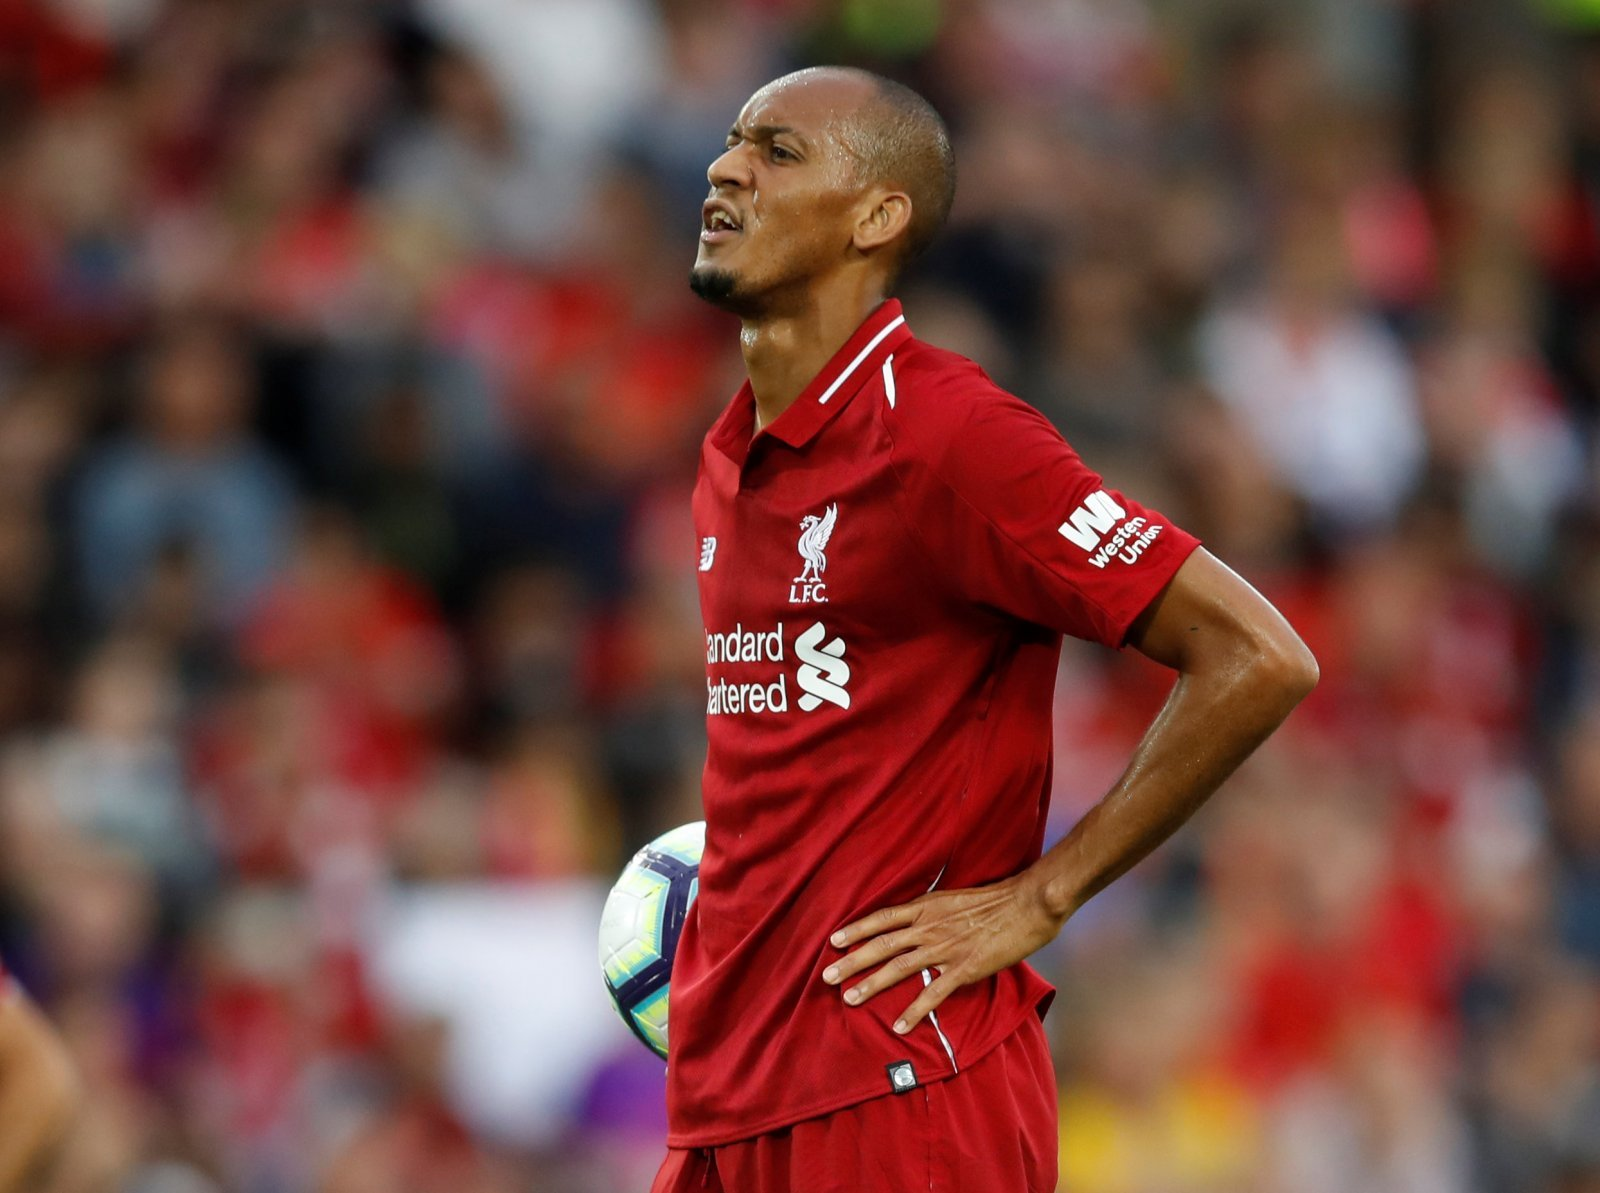 Liverpool fans on Twitter buzzing with Fabinho's debut